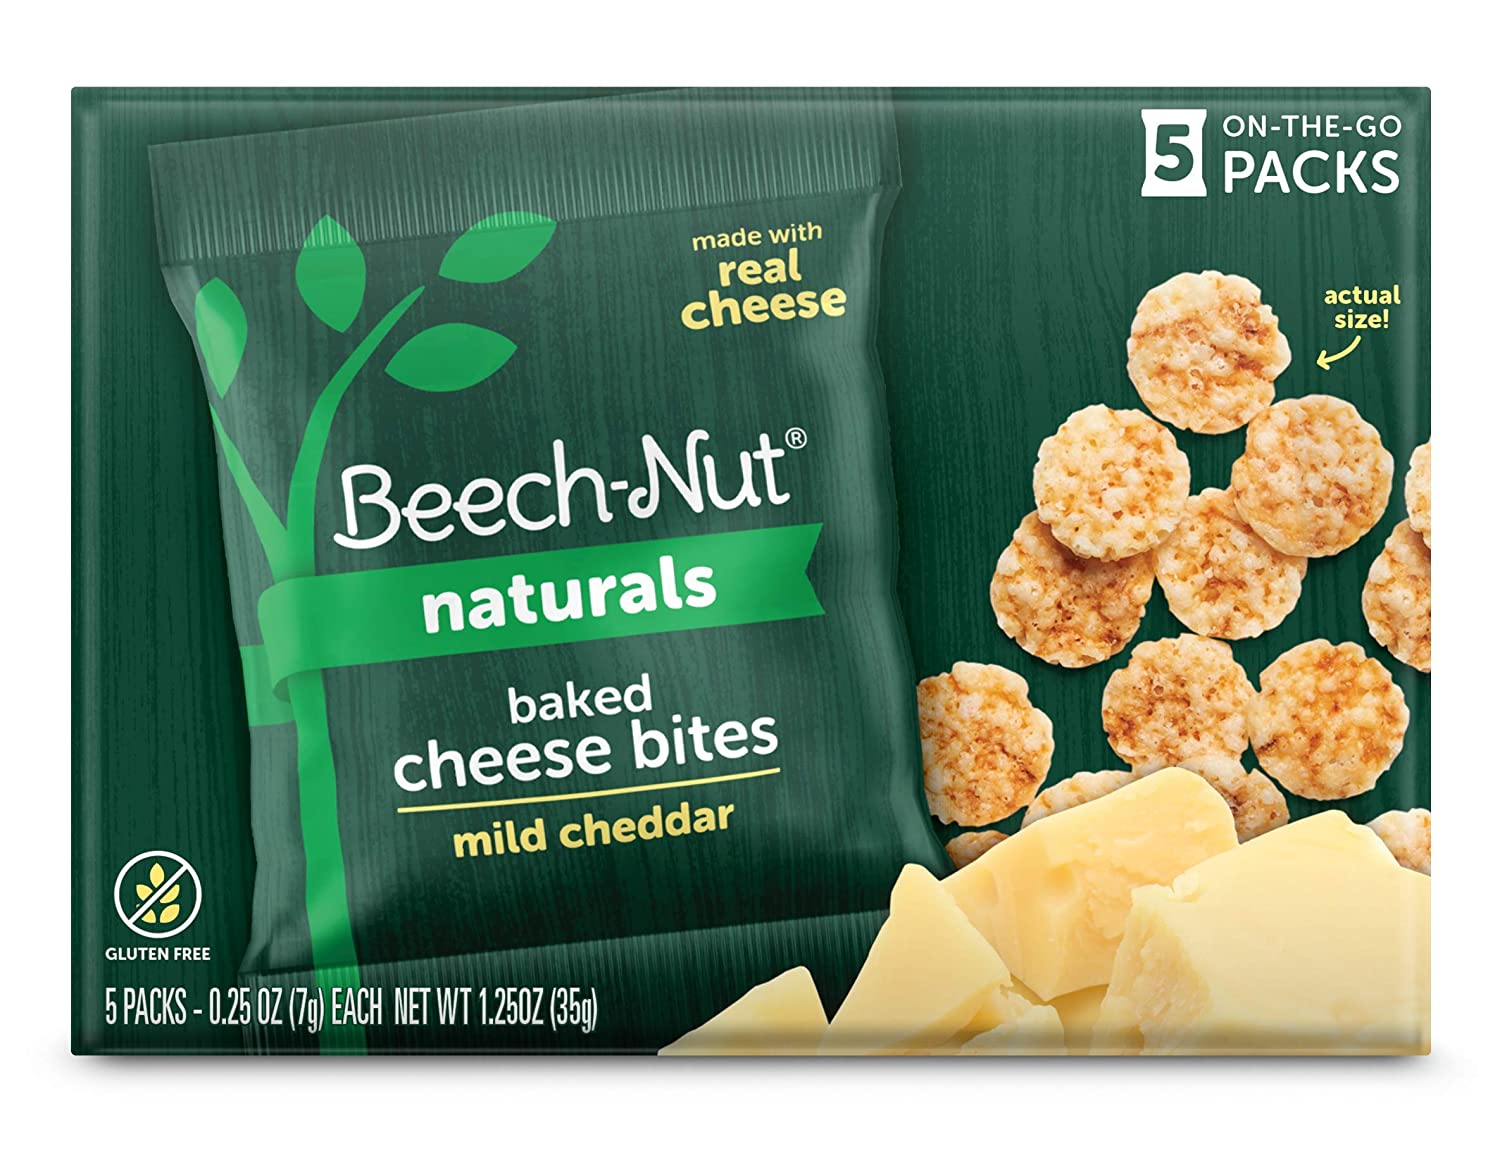 Beech-Nut Naturals Mild Cheddar Baked Cheese Bites Toddler Snacks, Made with Real Cheese, Gluten Free (Pack of 6 boxes, 5 count each)